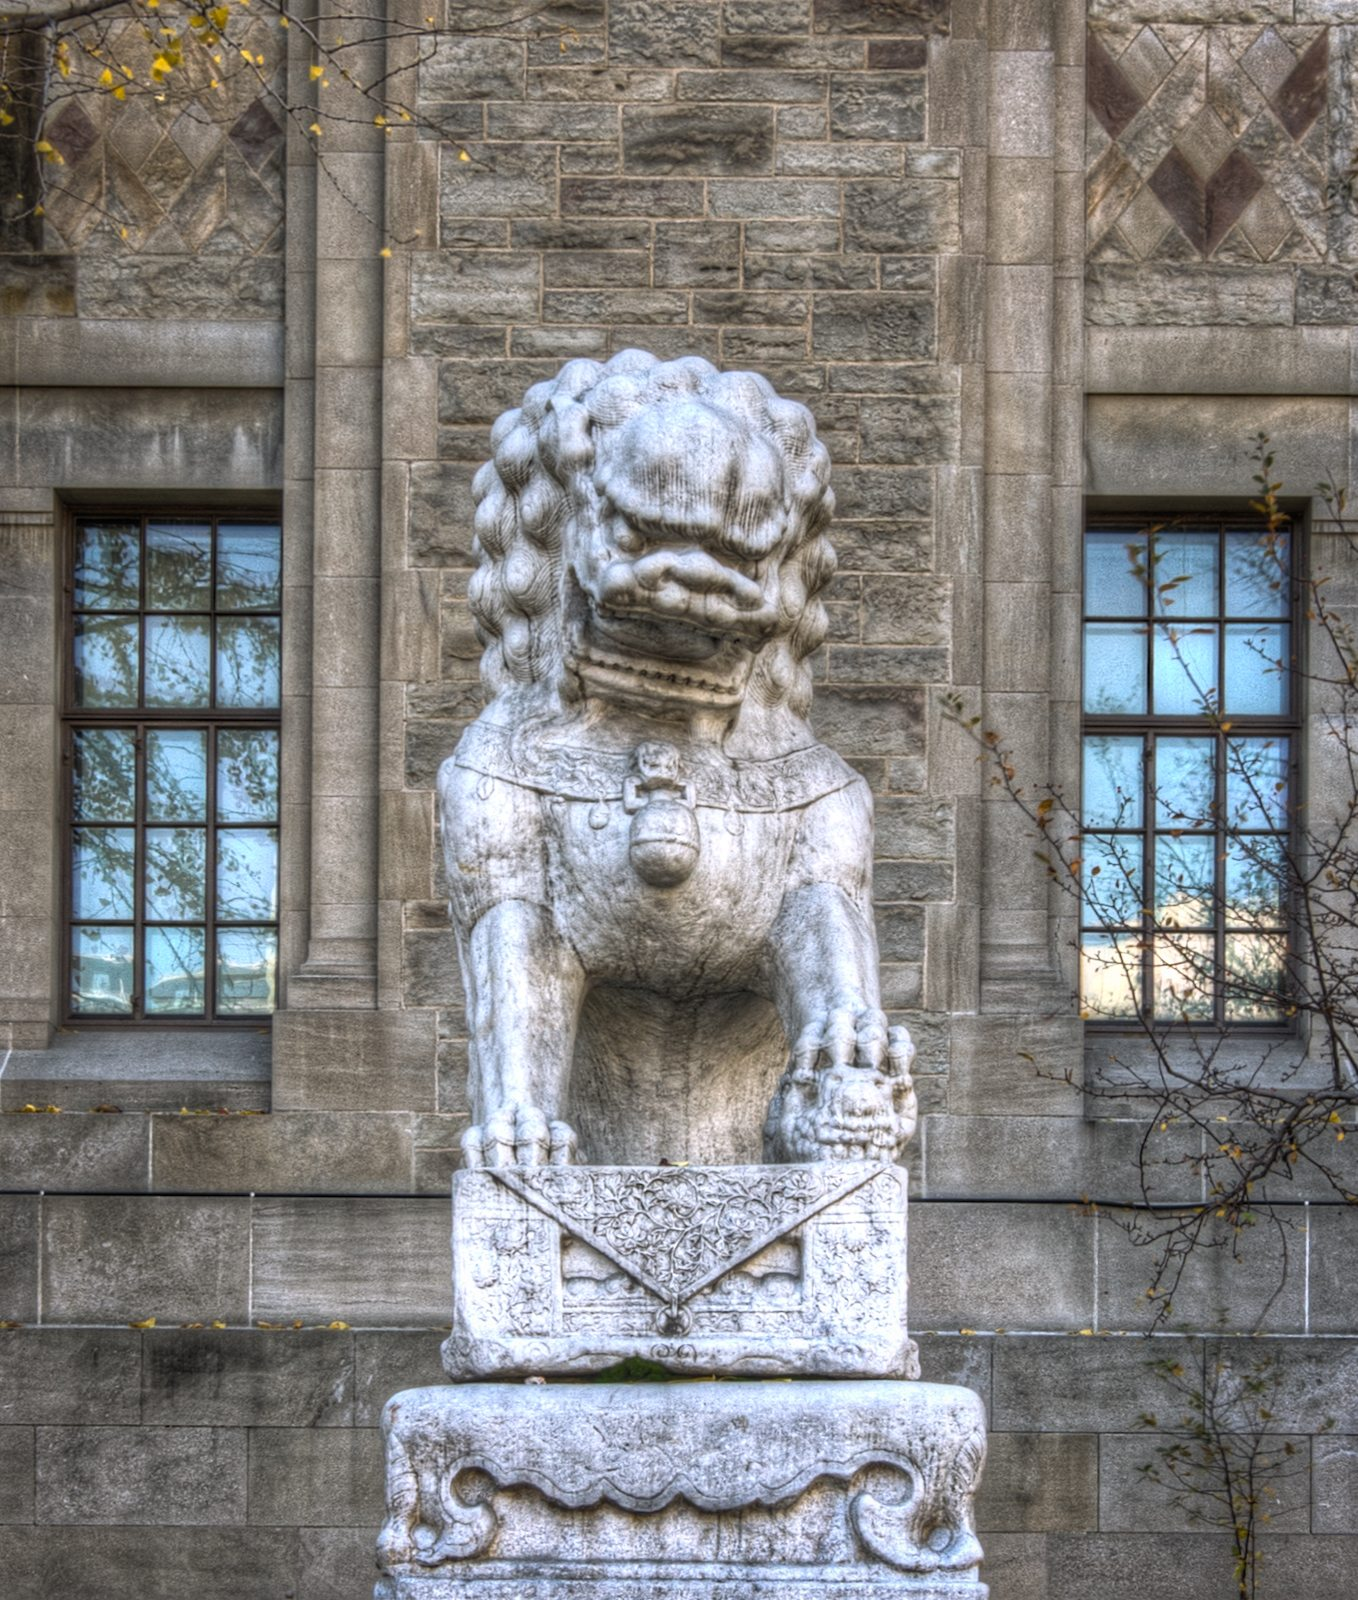 One of the lions near the former main entrance of the ROM. Photo by -Astin- in the Torontoist Flickr Pool.